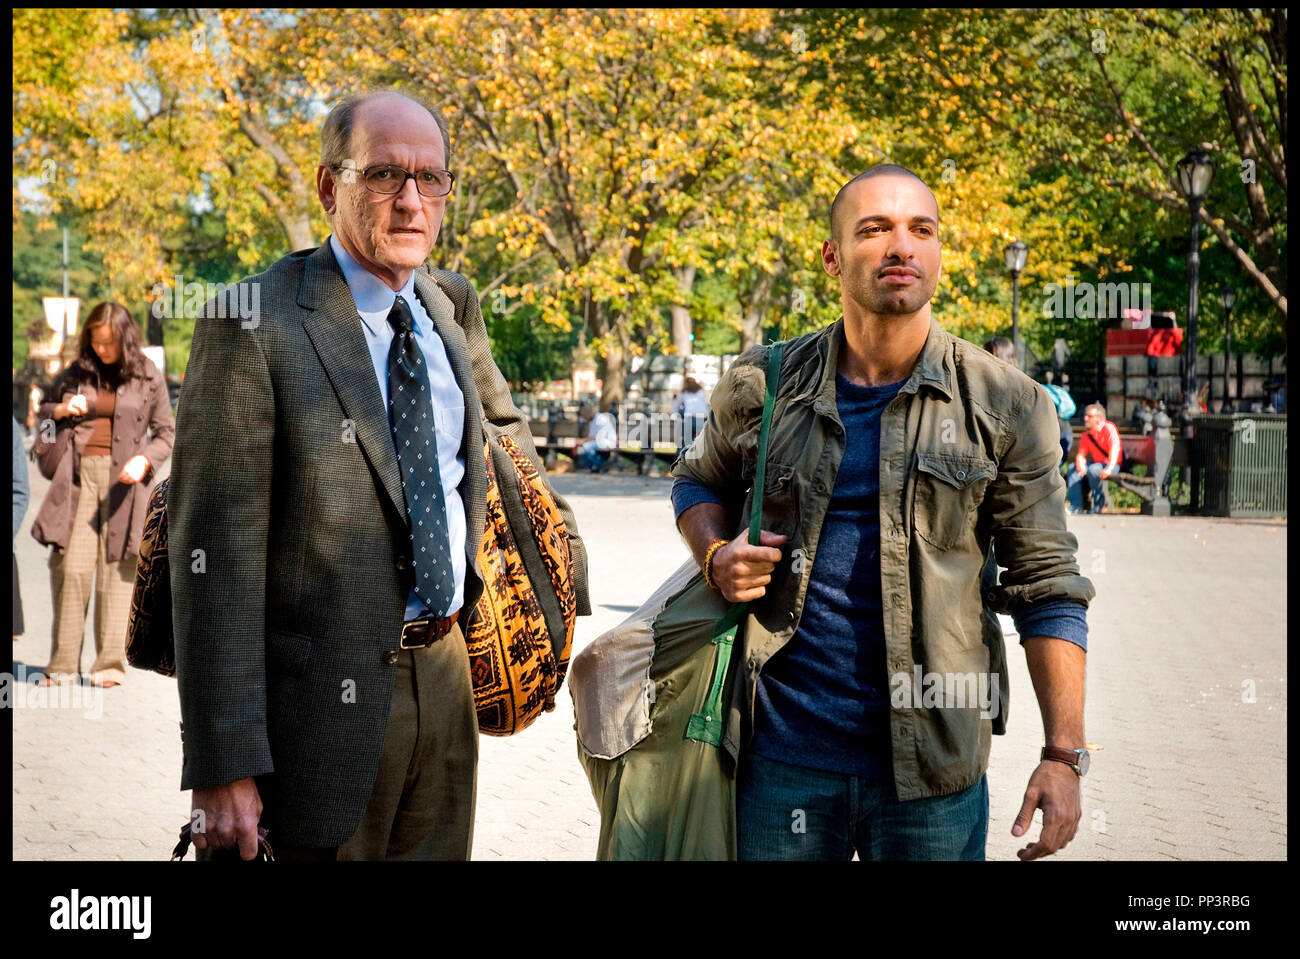 Prod DB C Next Wednesday Productions DR THE VISITOR De Thomas McCarthy 2007 USA Avec Richard Jenkins Et Haaz Sleiman Duo Mixte Sac En Bandoulire Parc